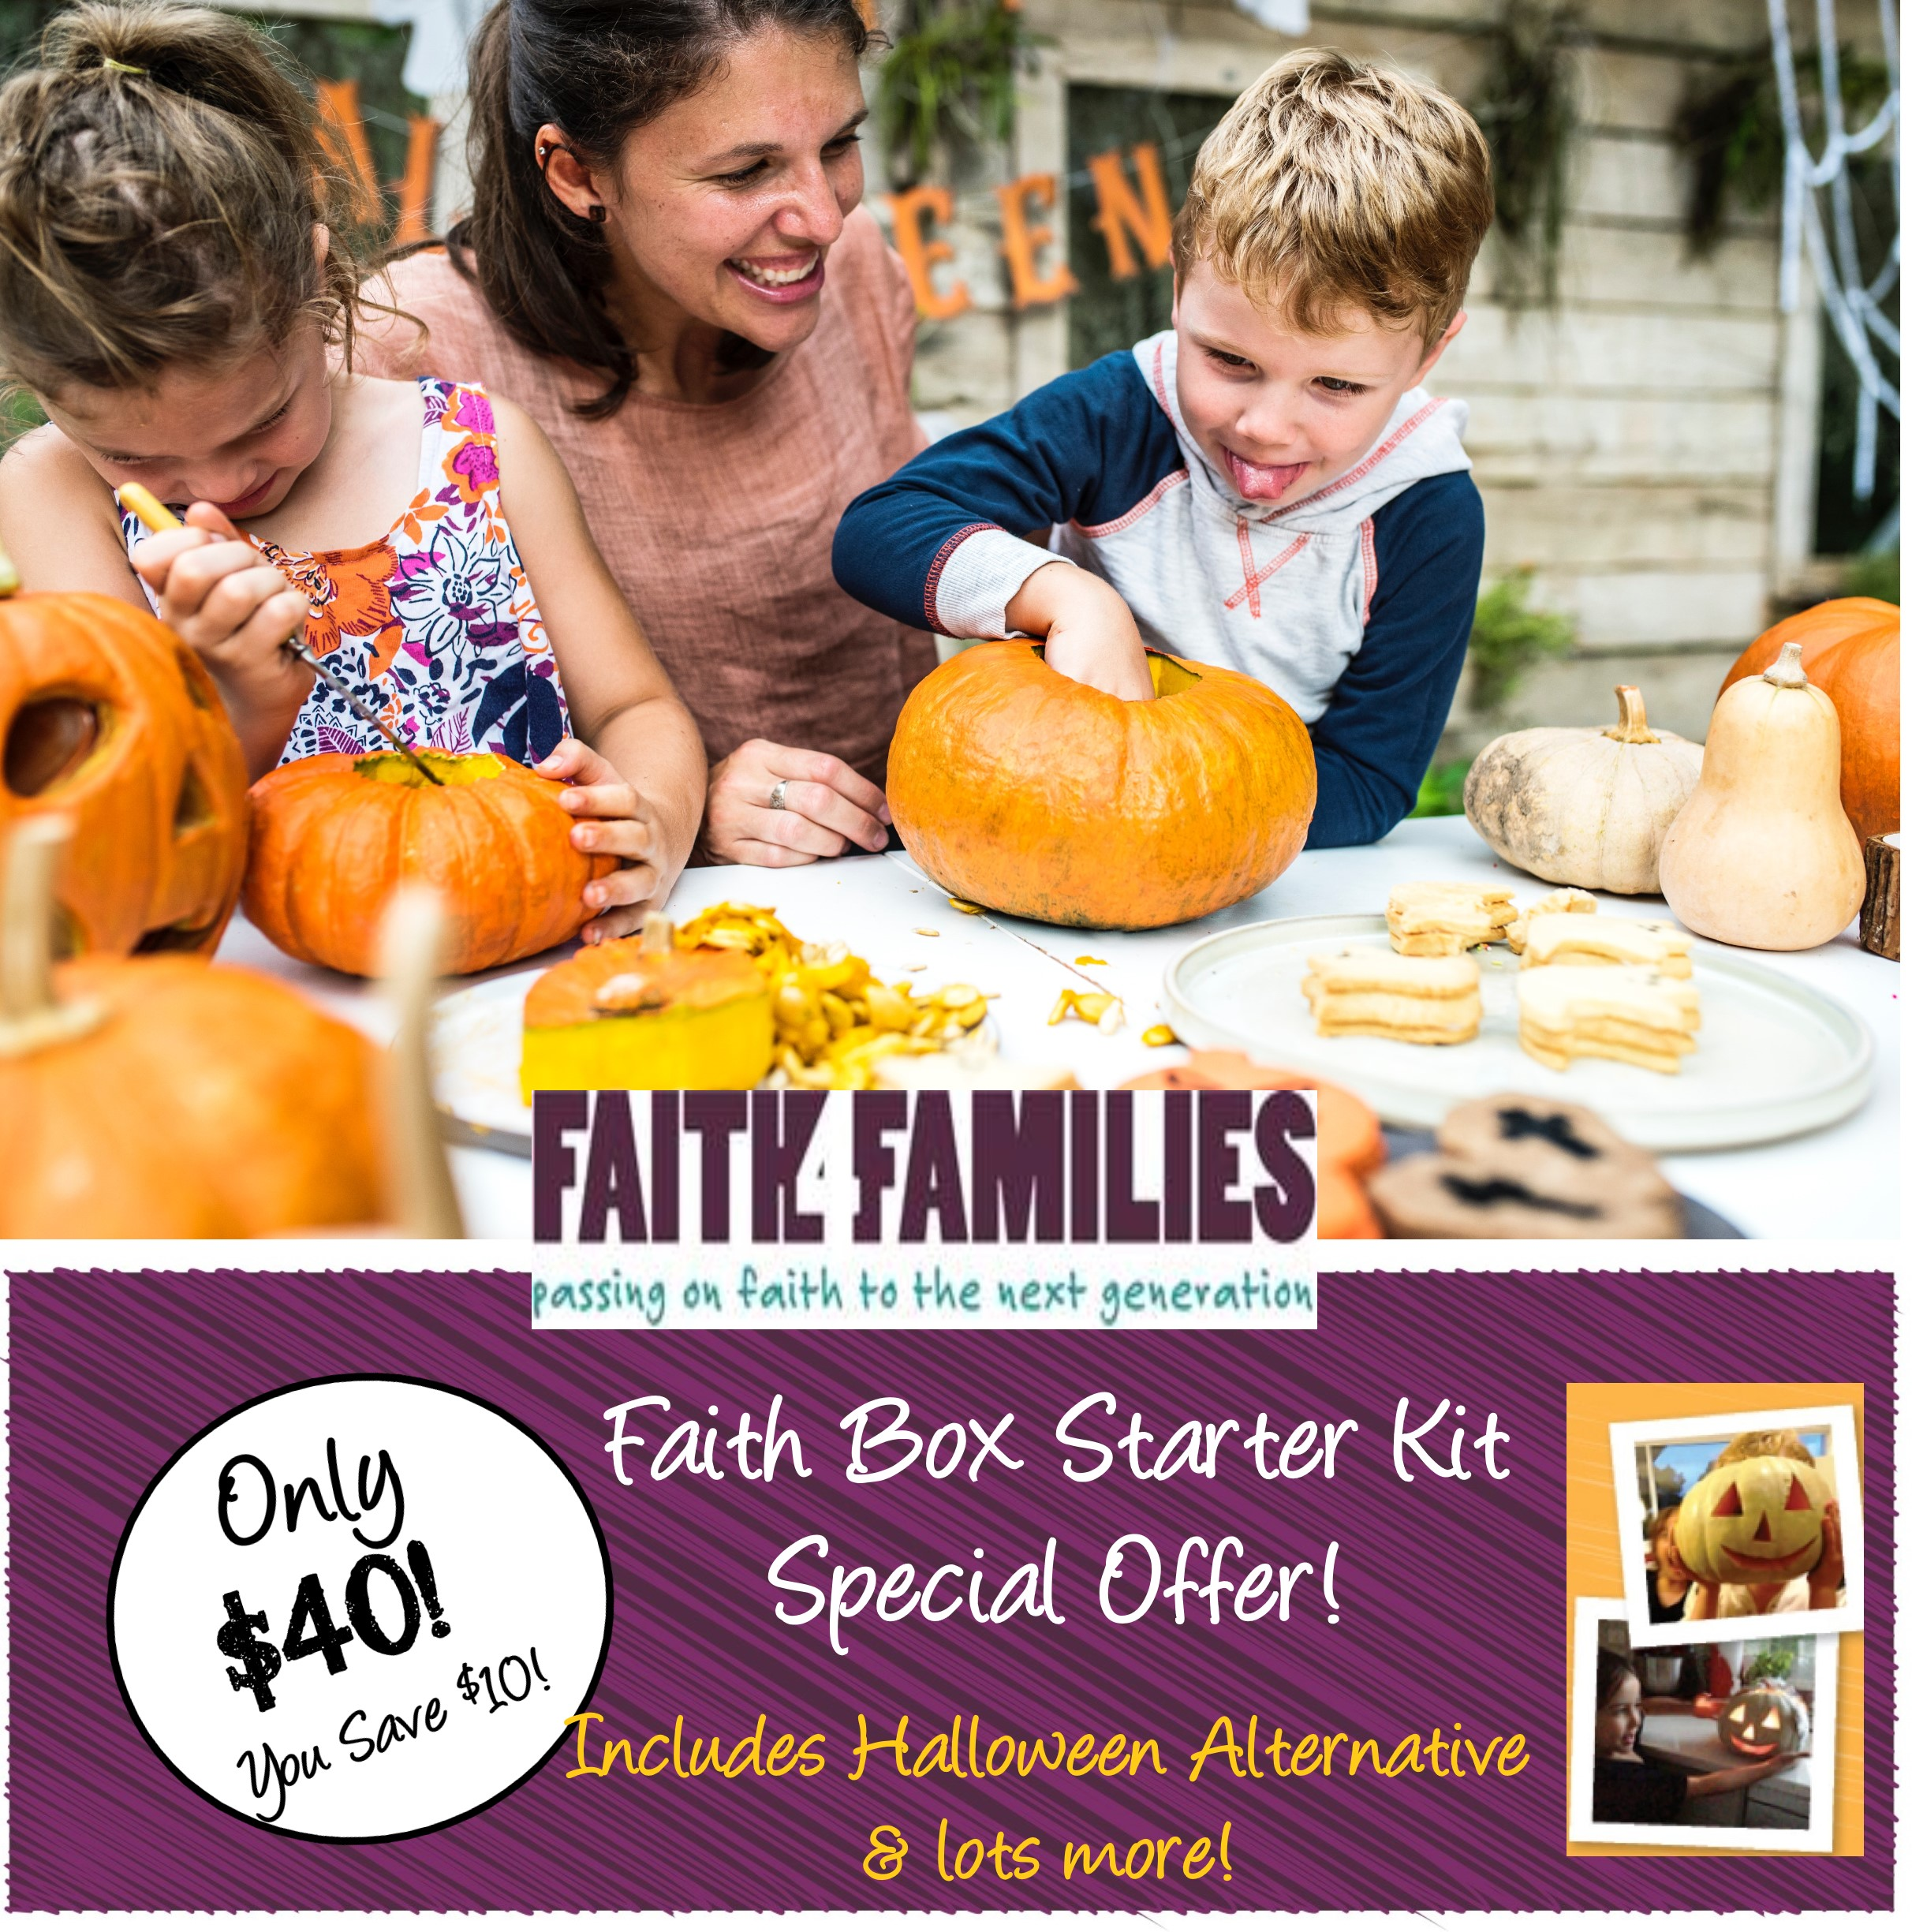 Halloween Alternative Faith Box Special Offer!